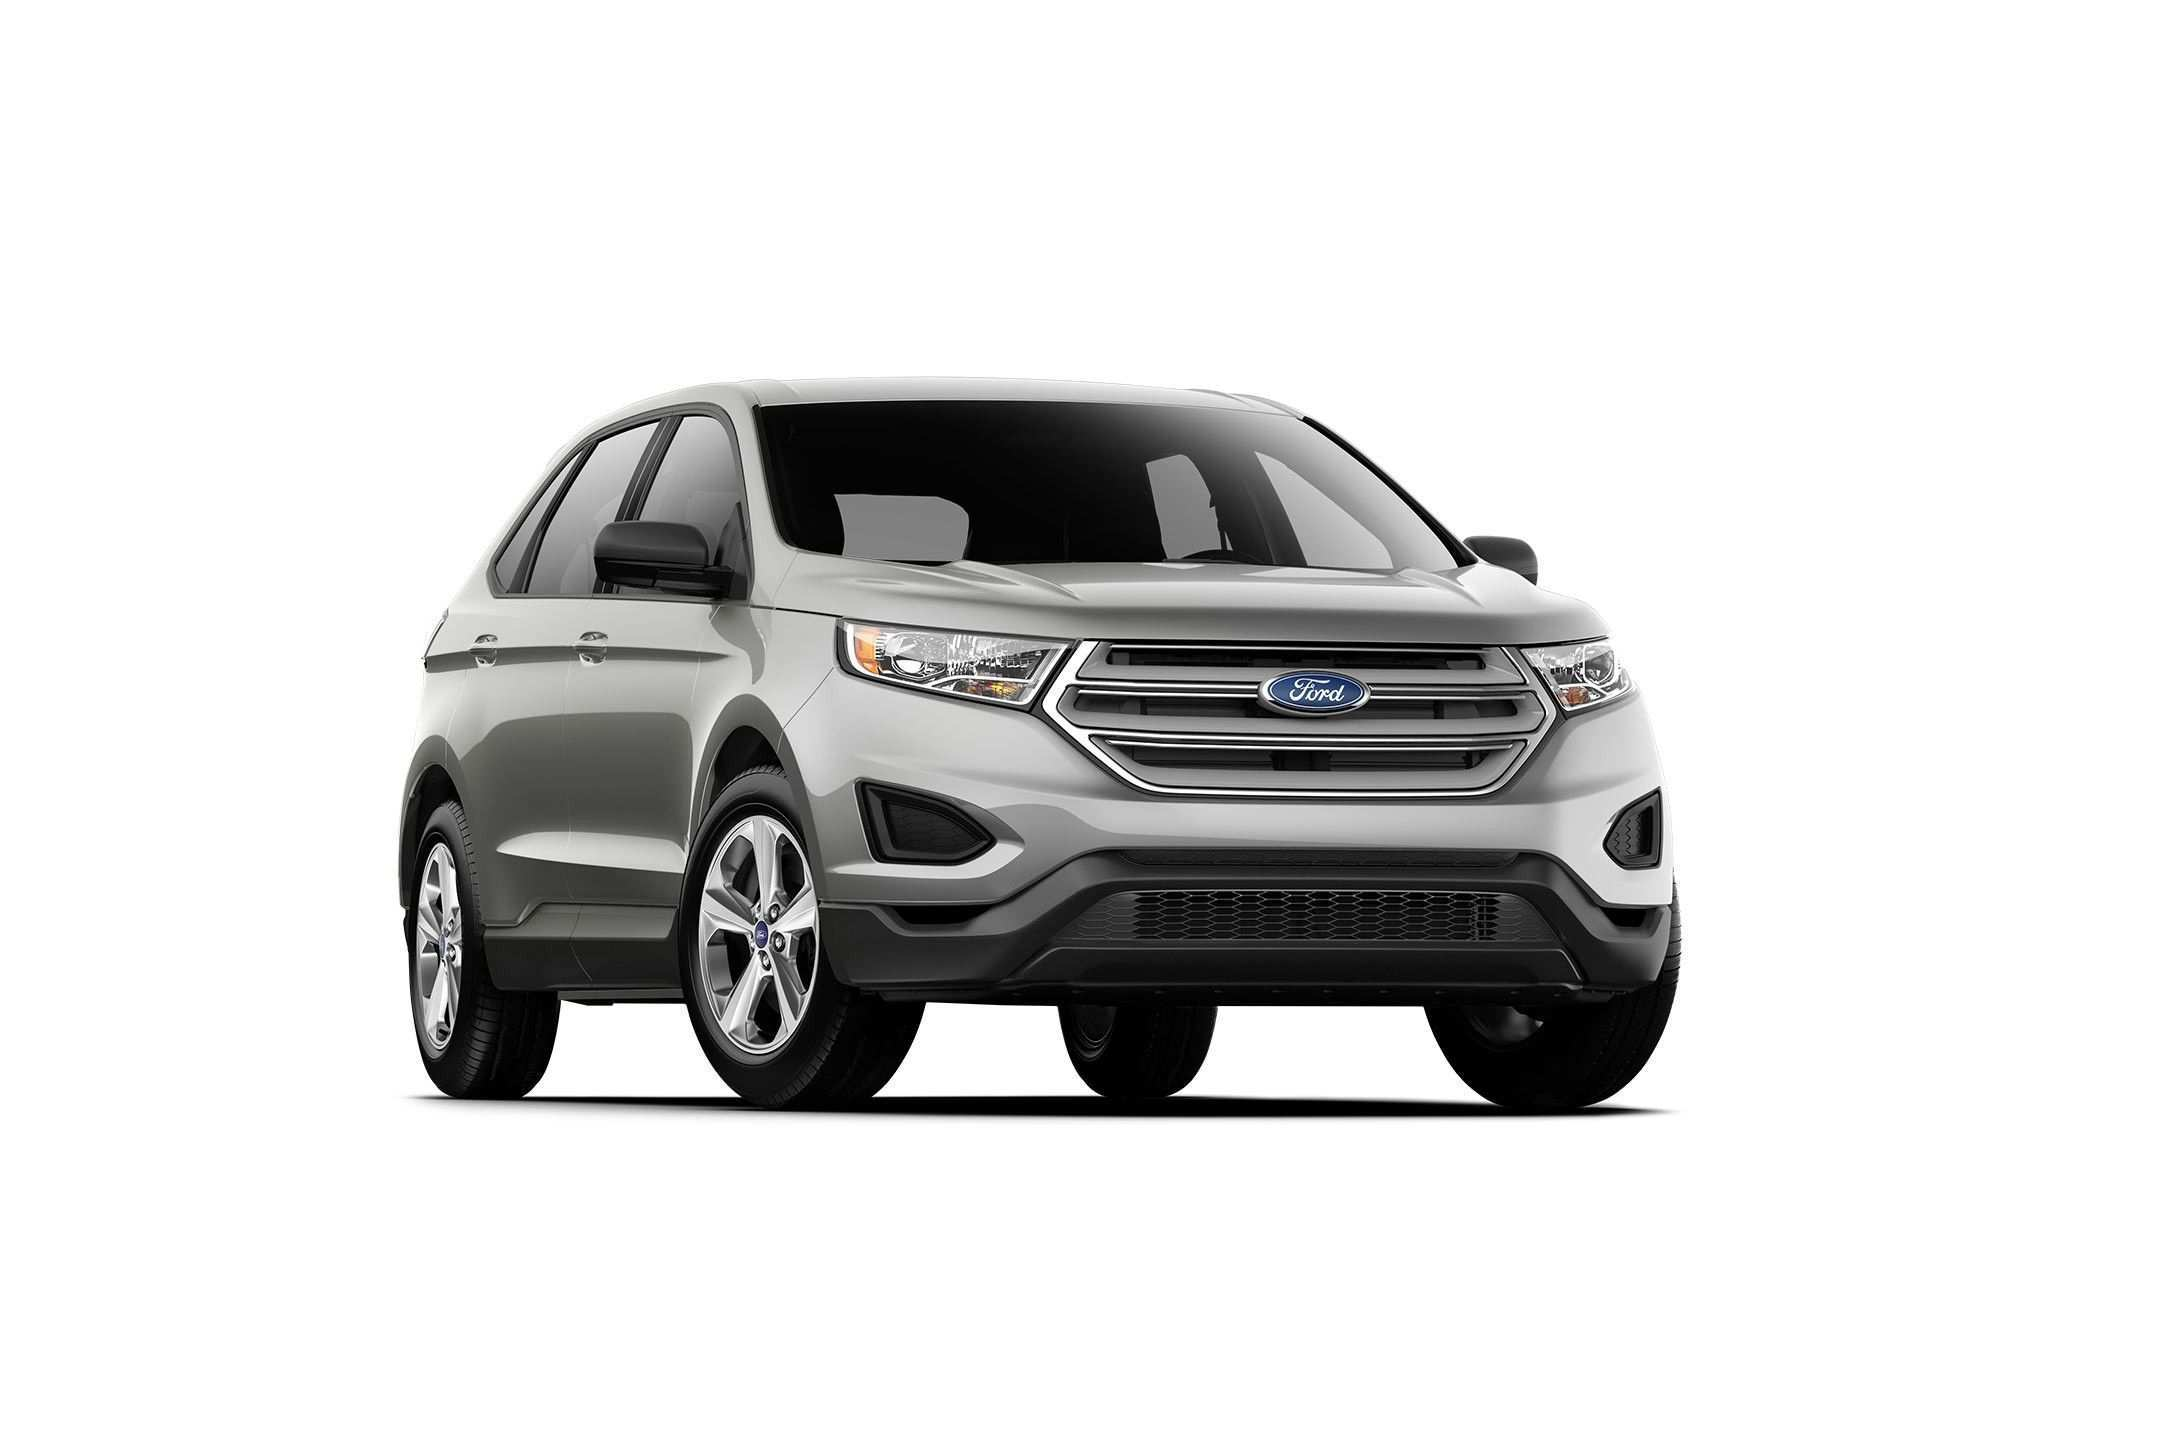 88 New Ford Edge 2020 New Design Images by Ford Edge 2020 New Design